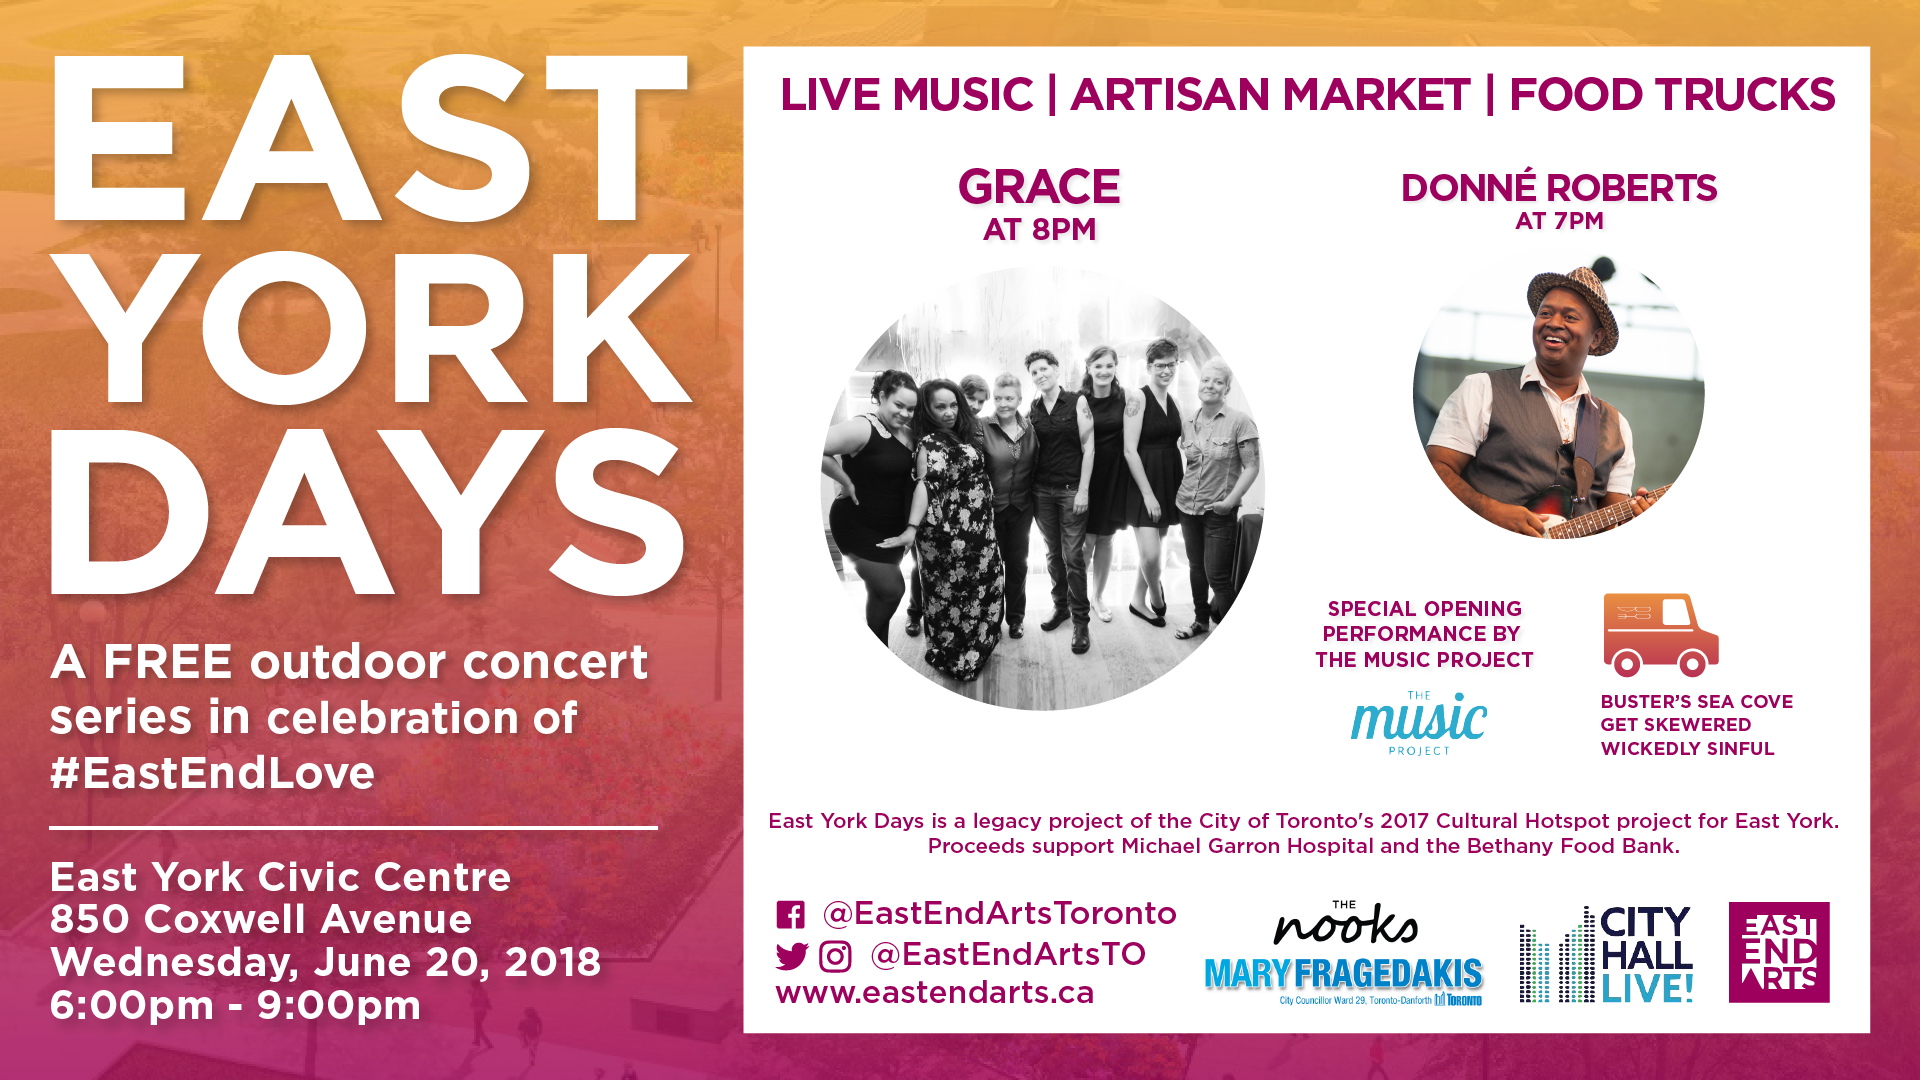 East York Days – Free Concert Series - East End Arts